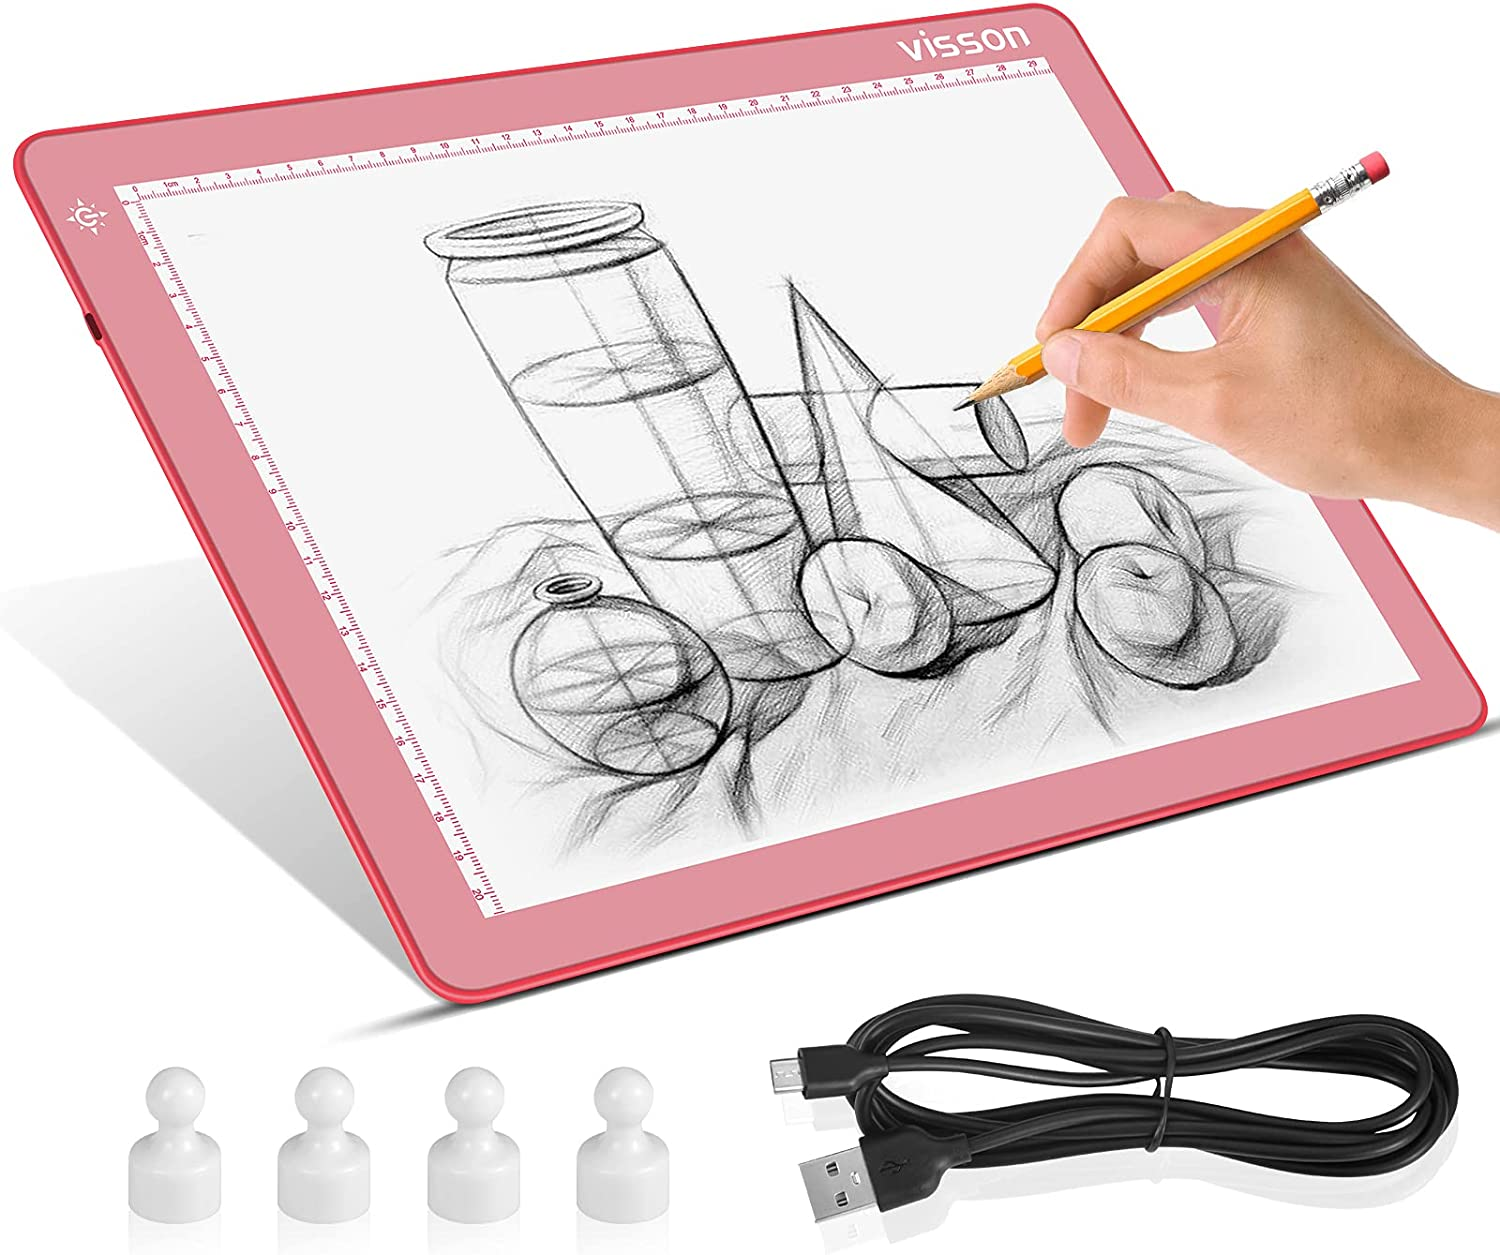 Portable A4 San Diego Mall Tracing LED Copy Branded goods Light Pr Board with pad